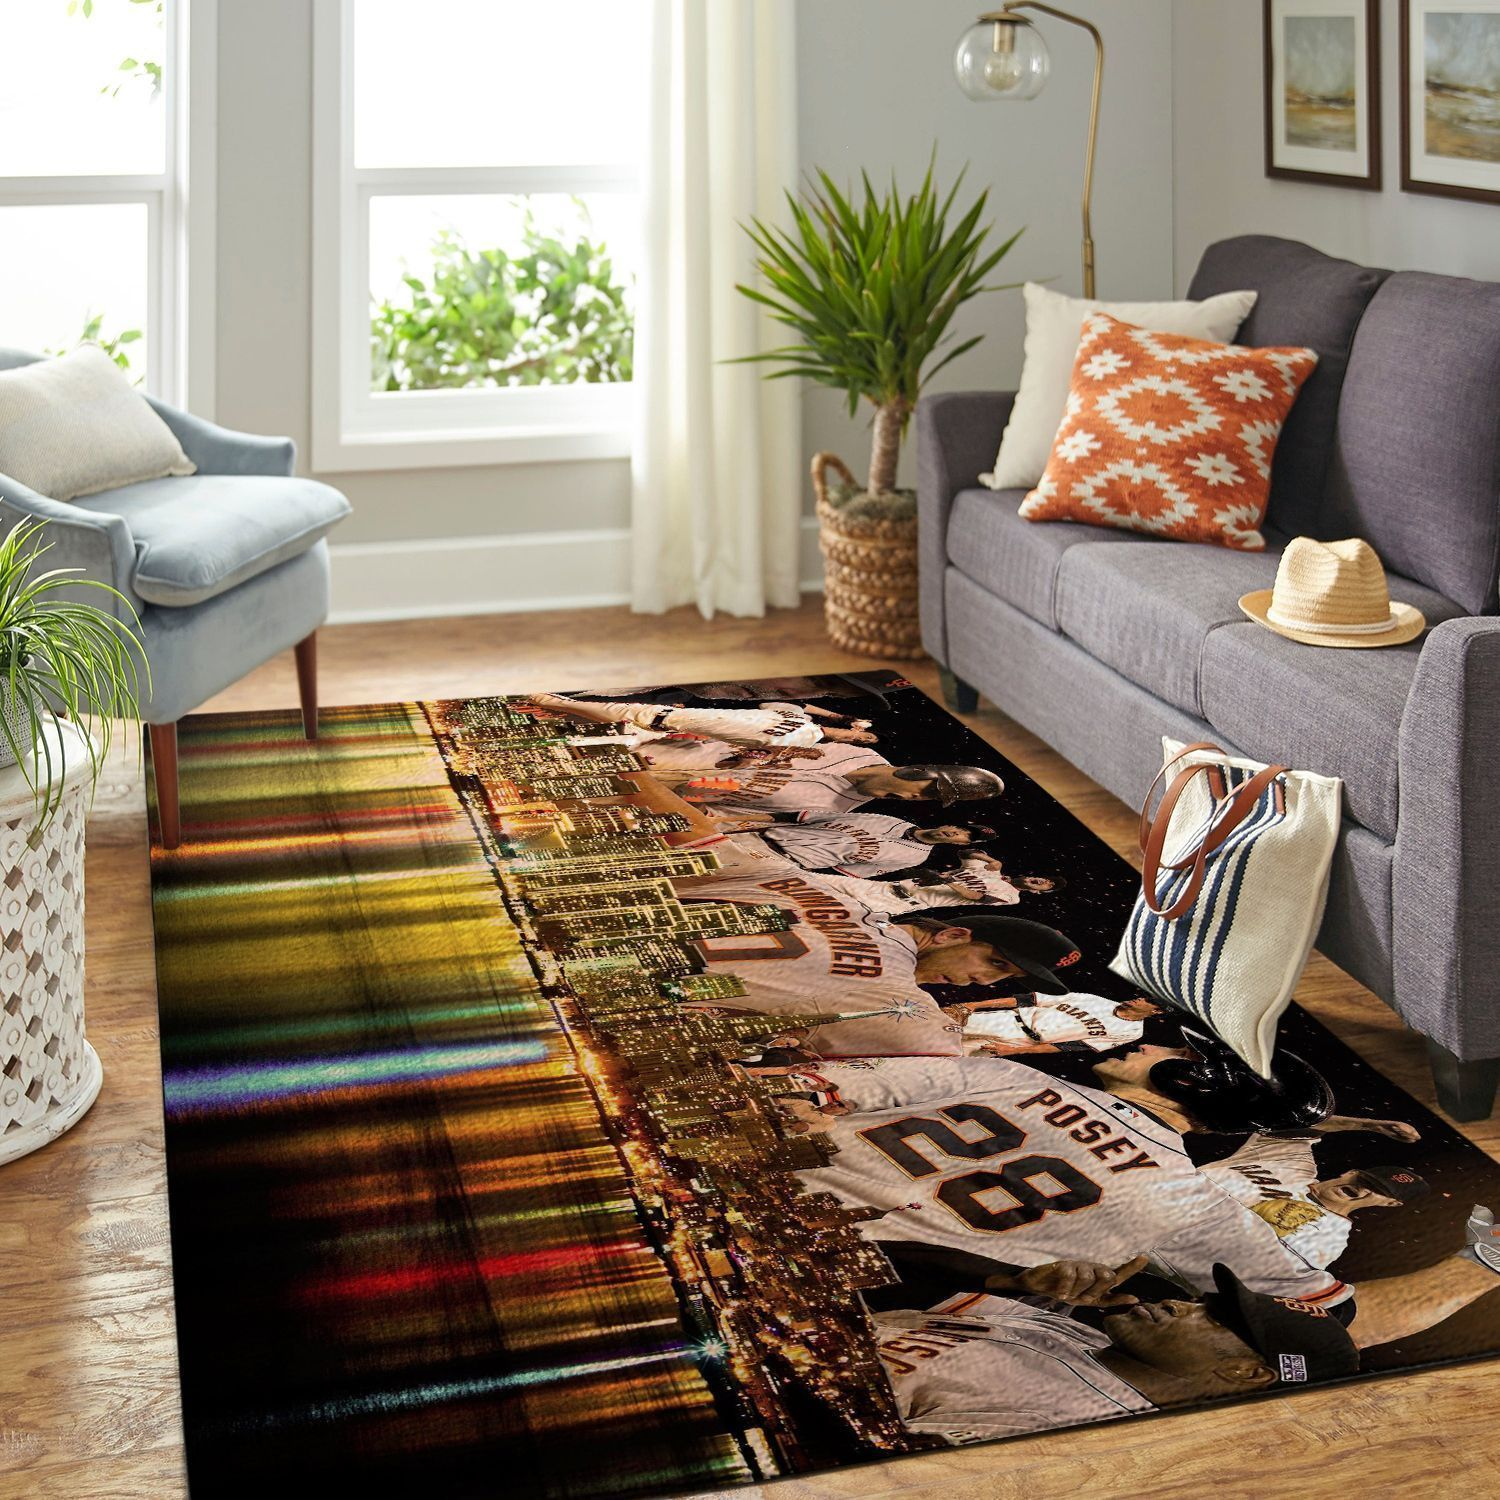 Amazon San Francisco Giants Living Room Area No4933 Rug